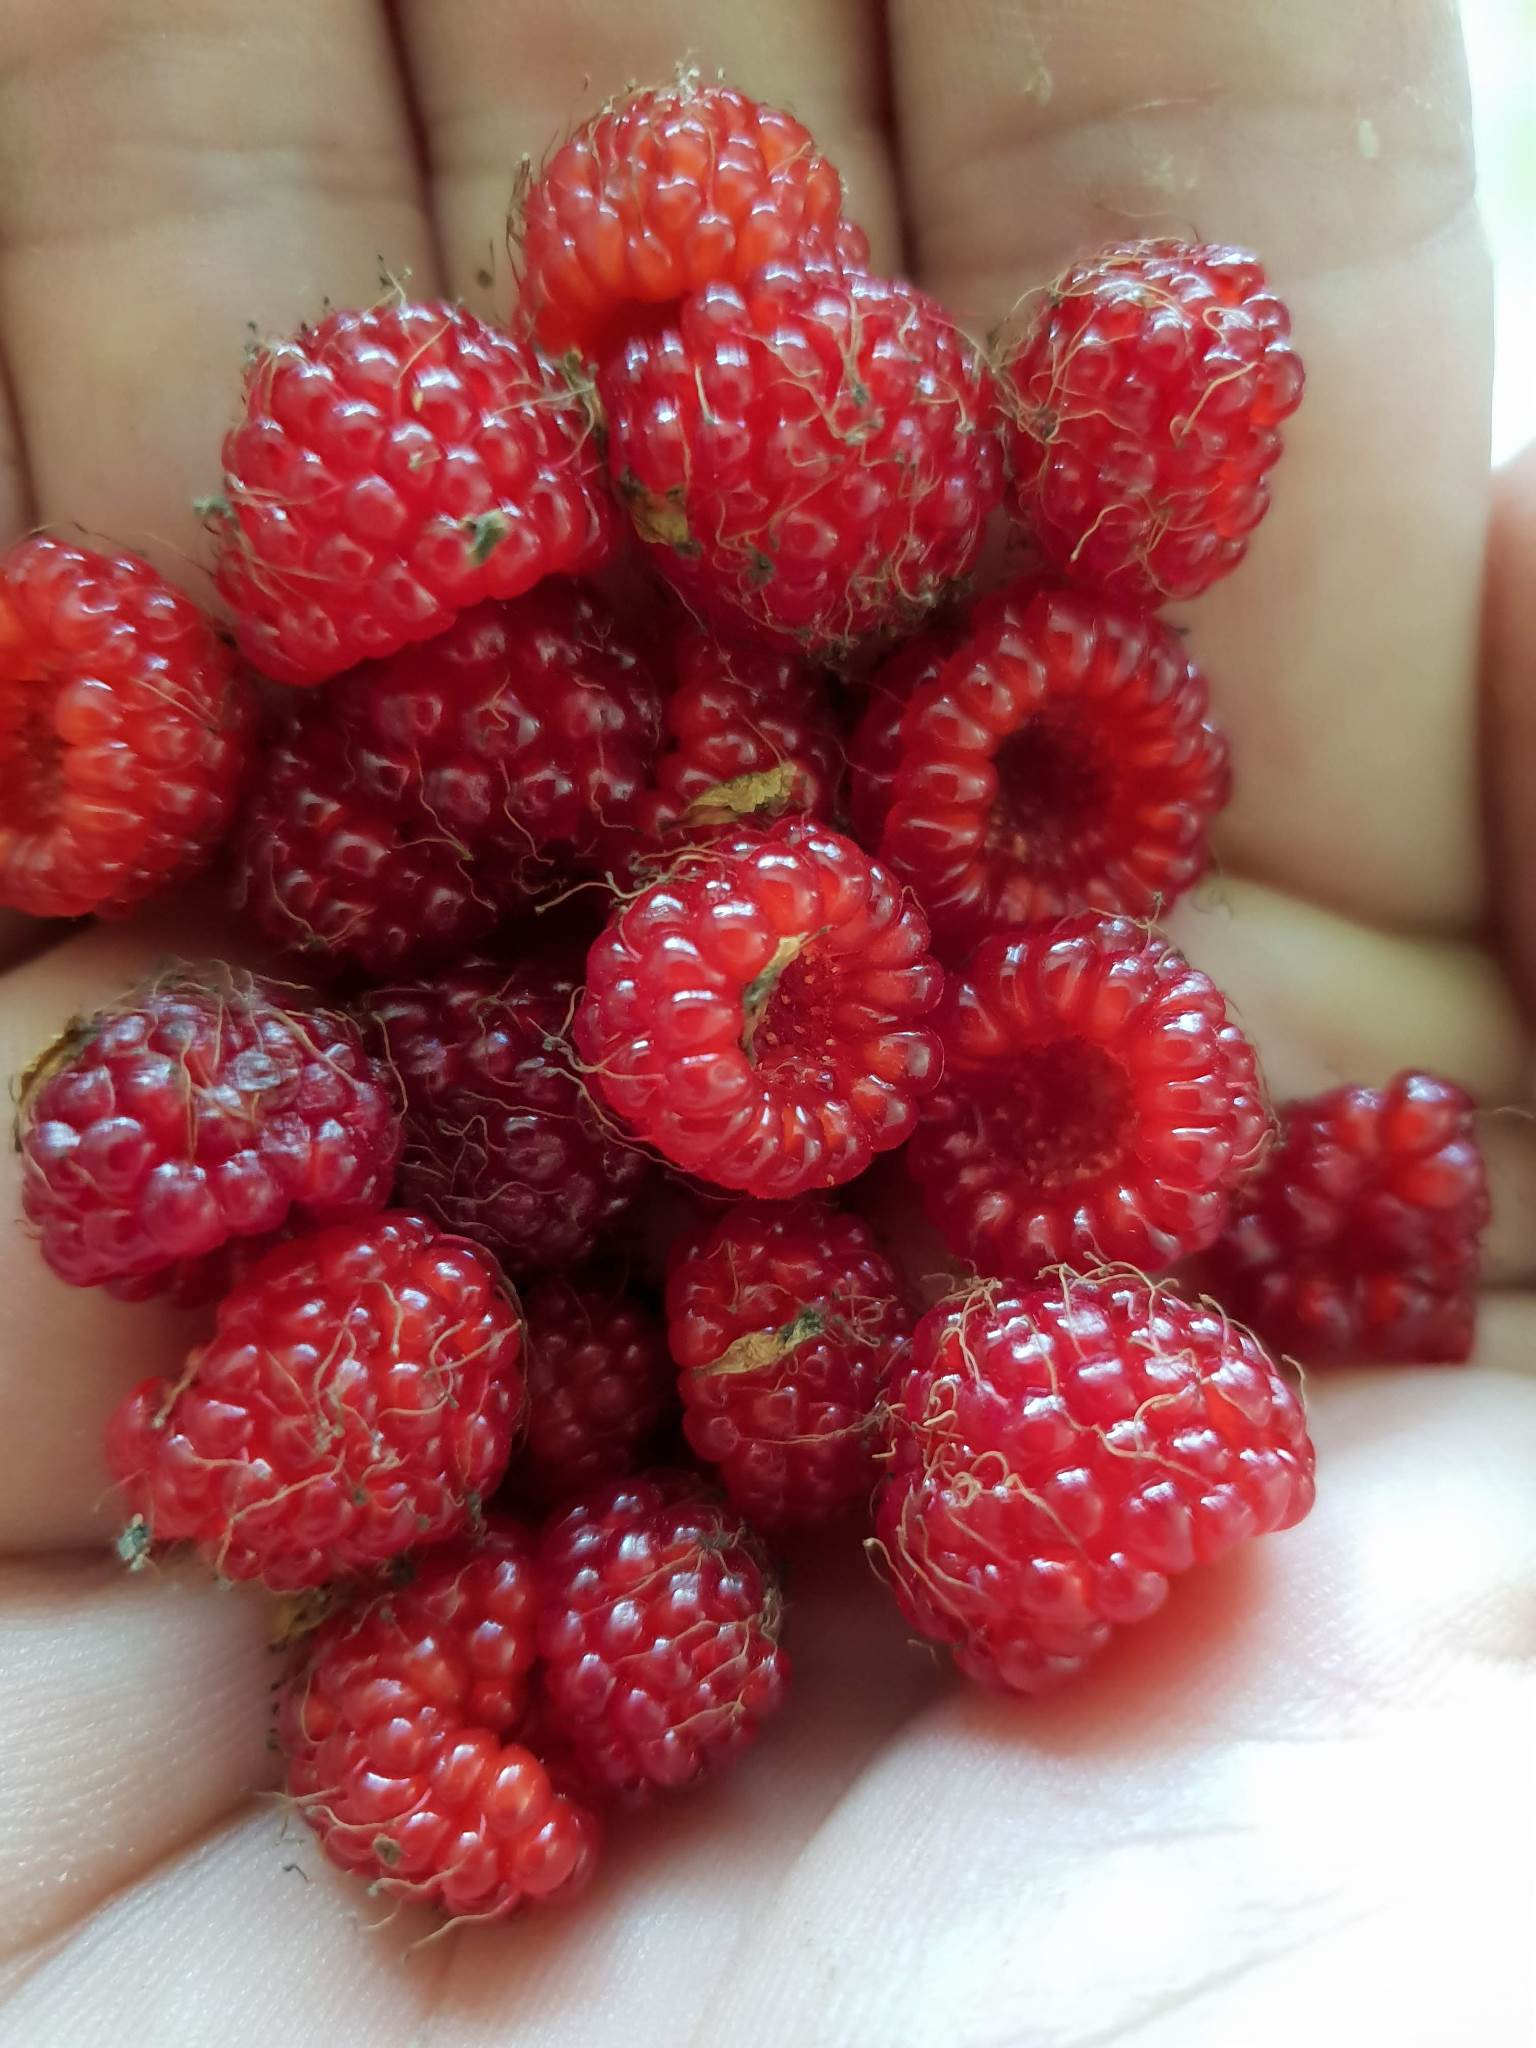 Native Raspberries